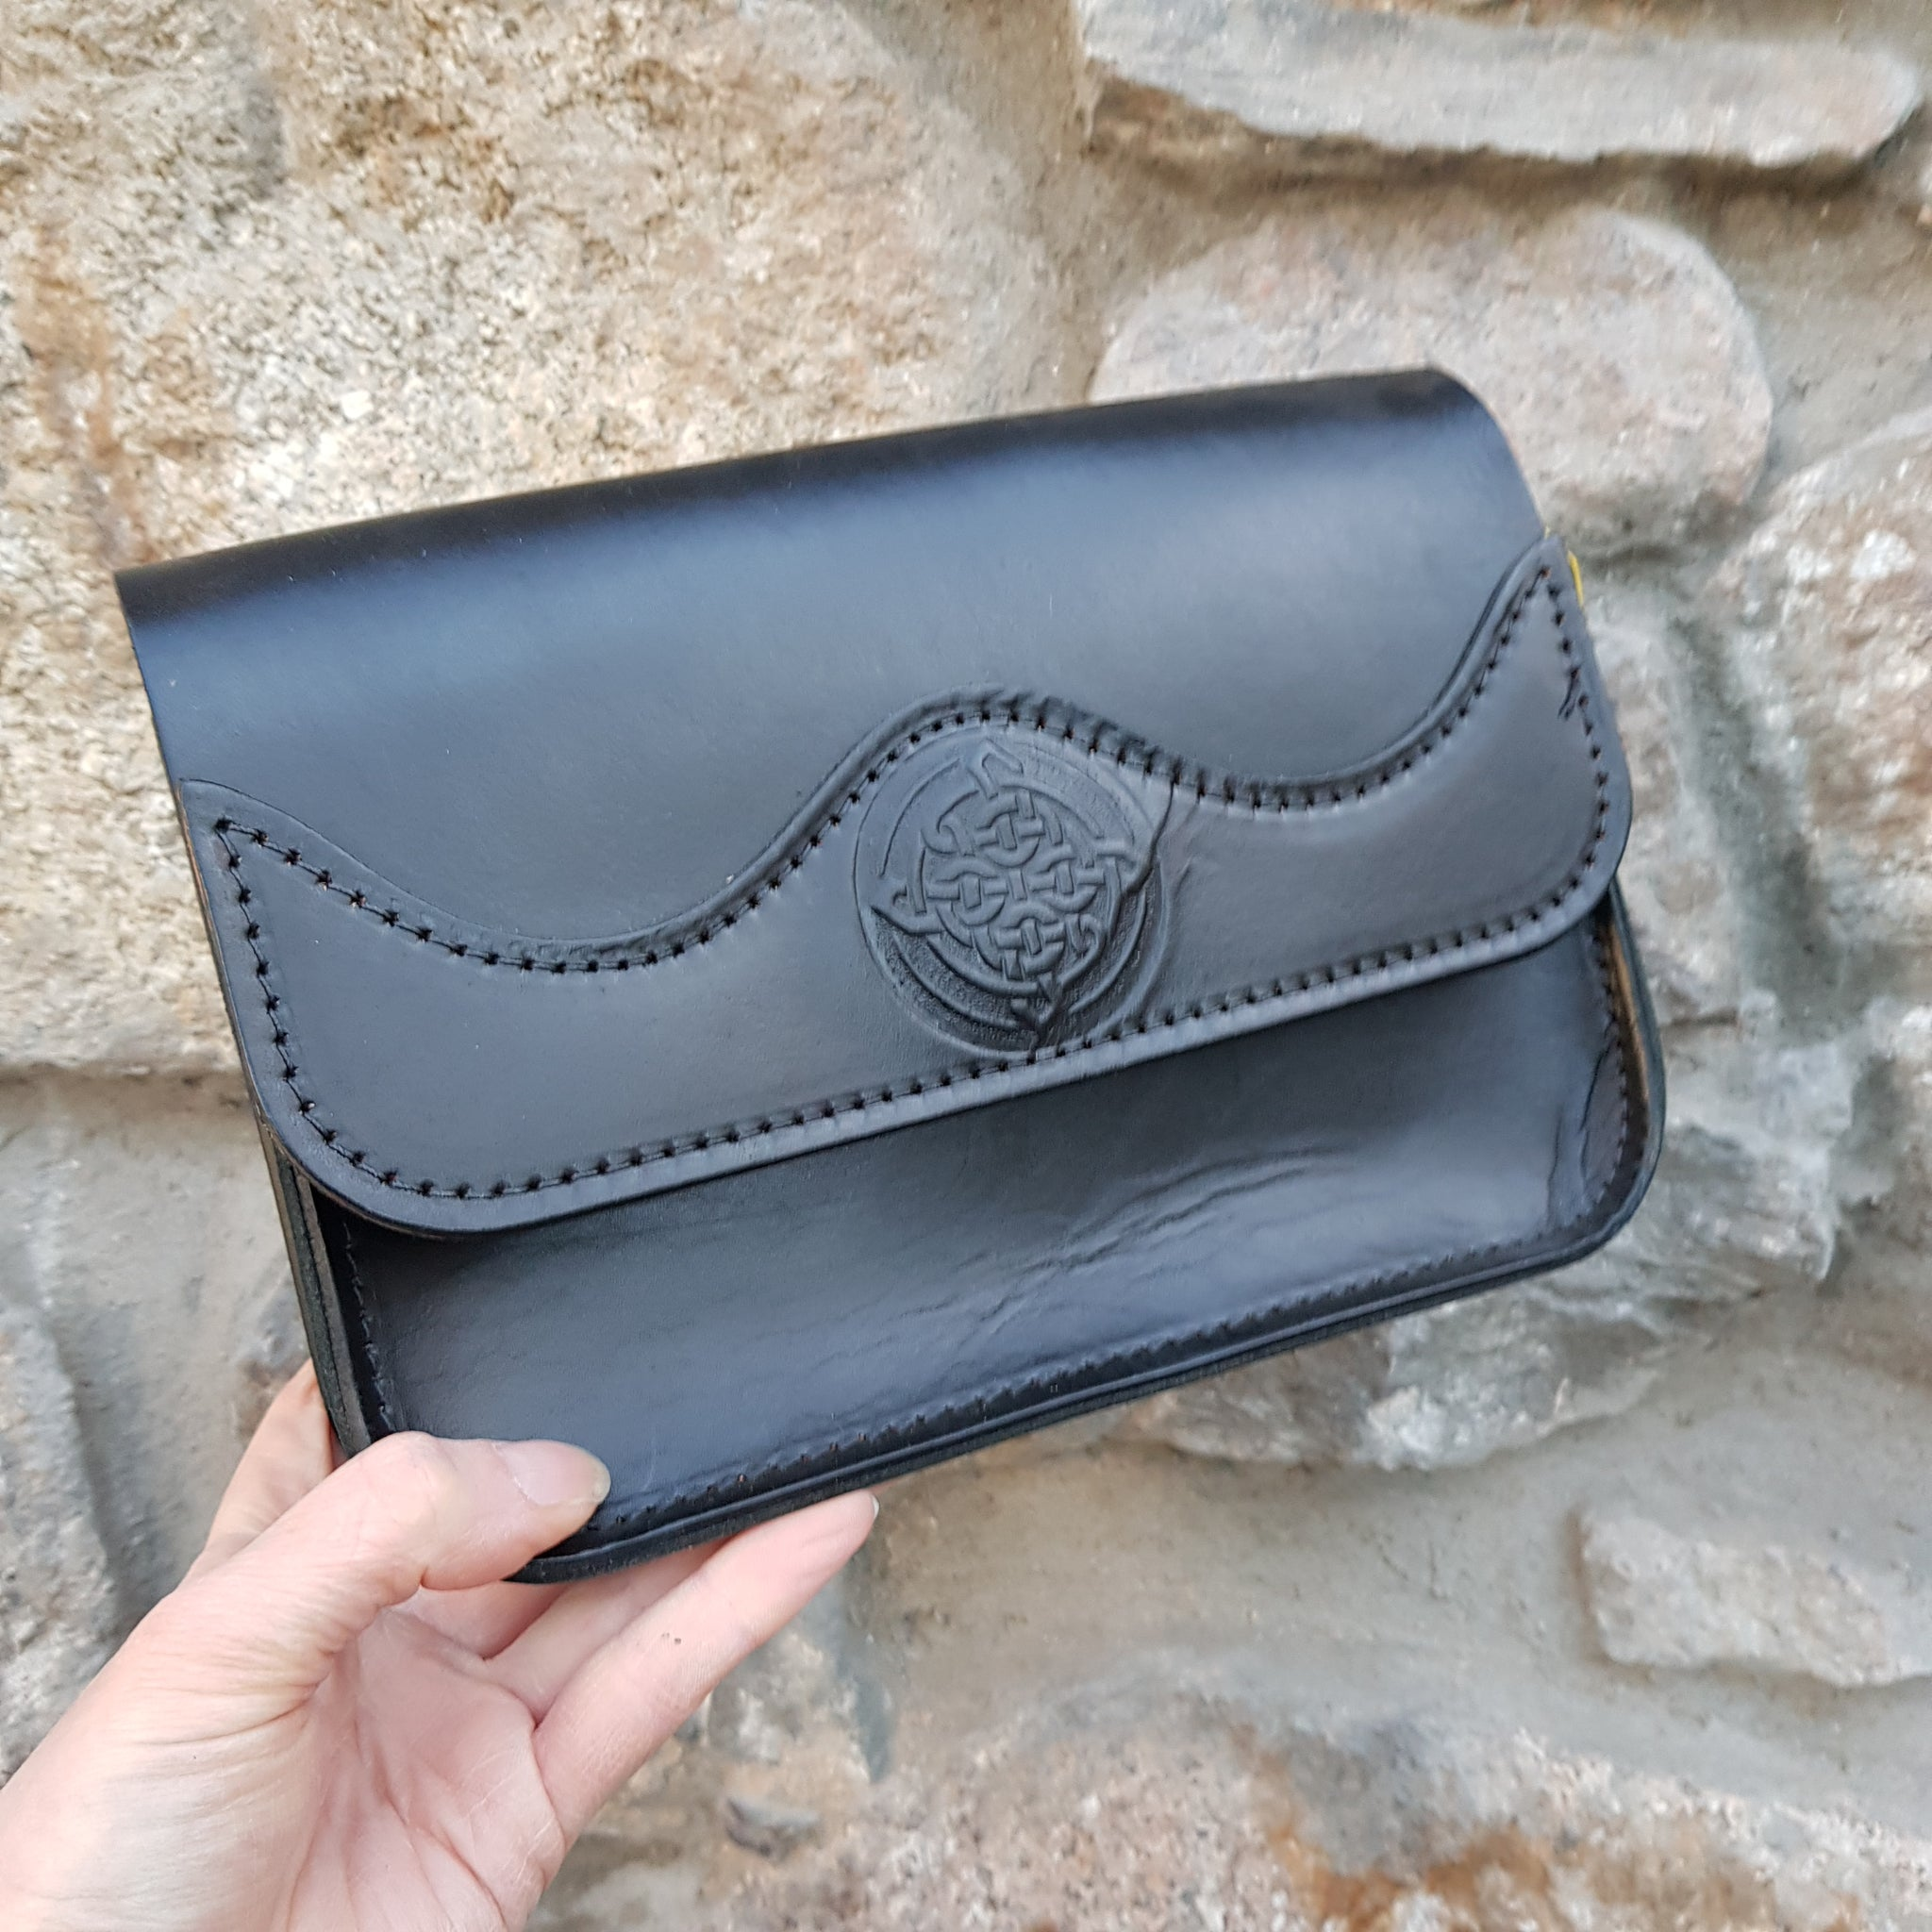 Black handbag with celtic knot